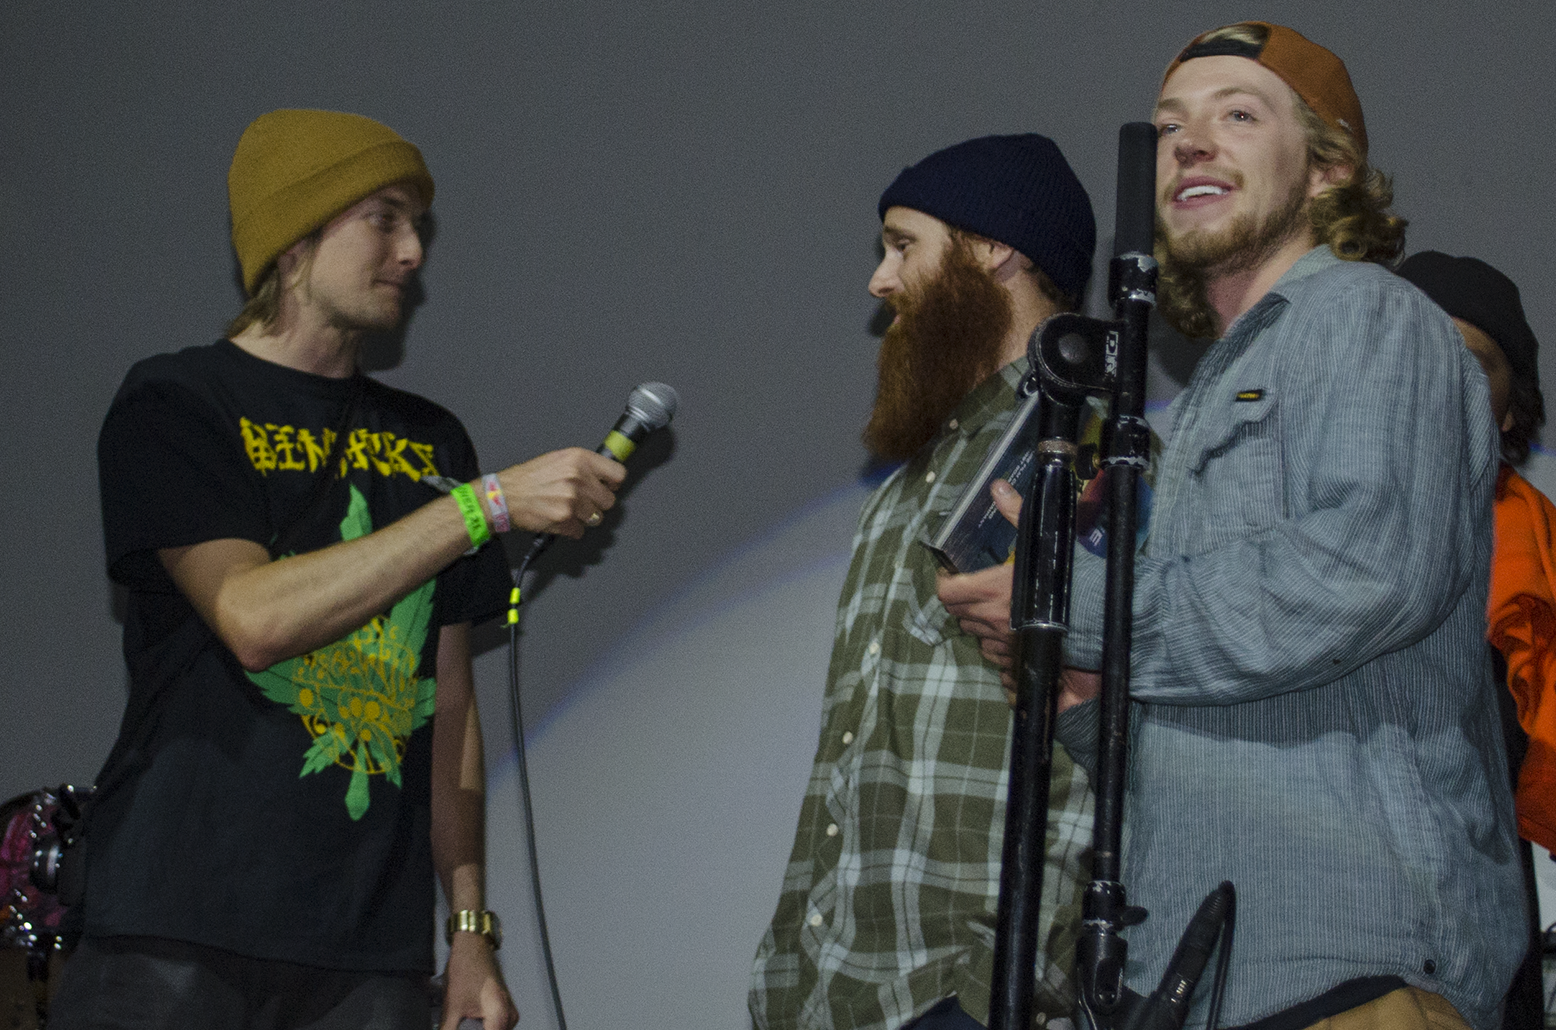 Jake and Pat introducing  Mr. Plant  while Dylan Alito chucks product off stage.